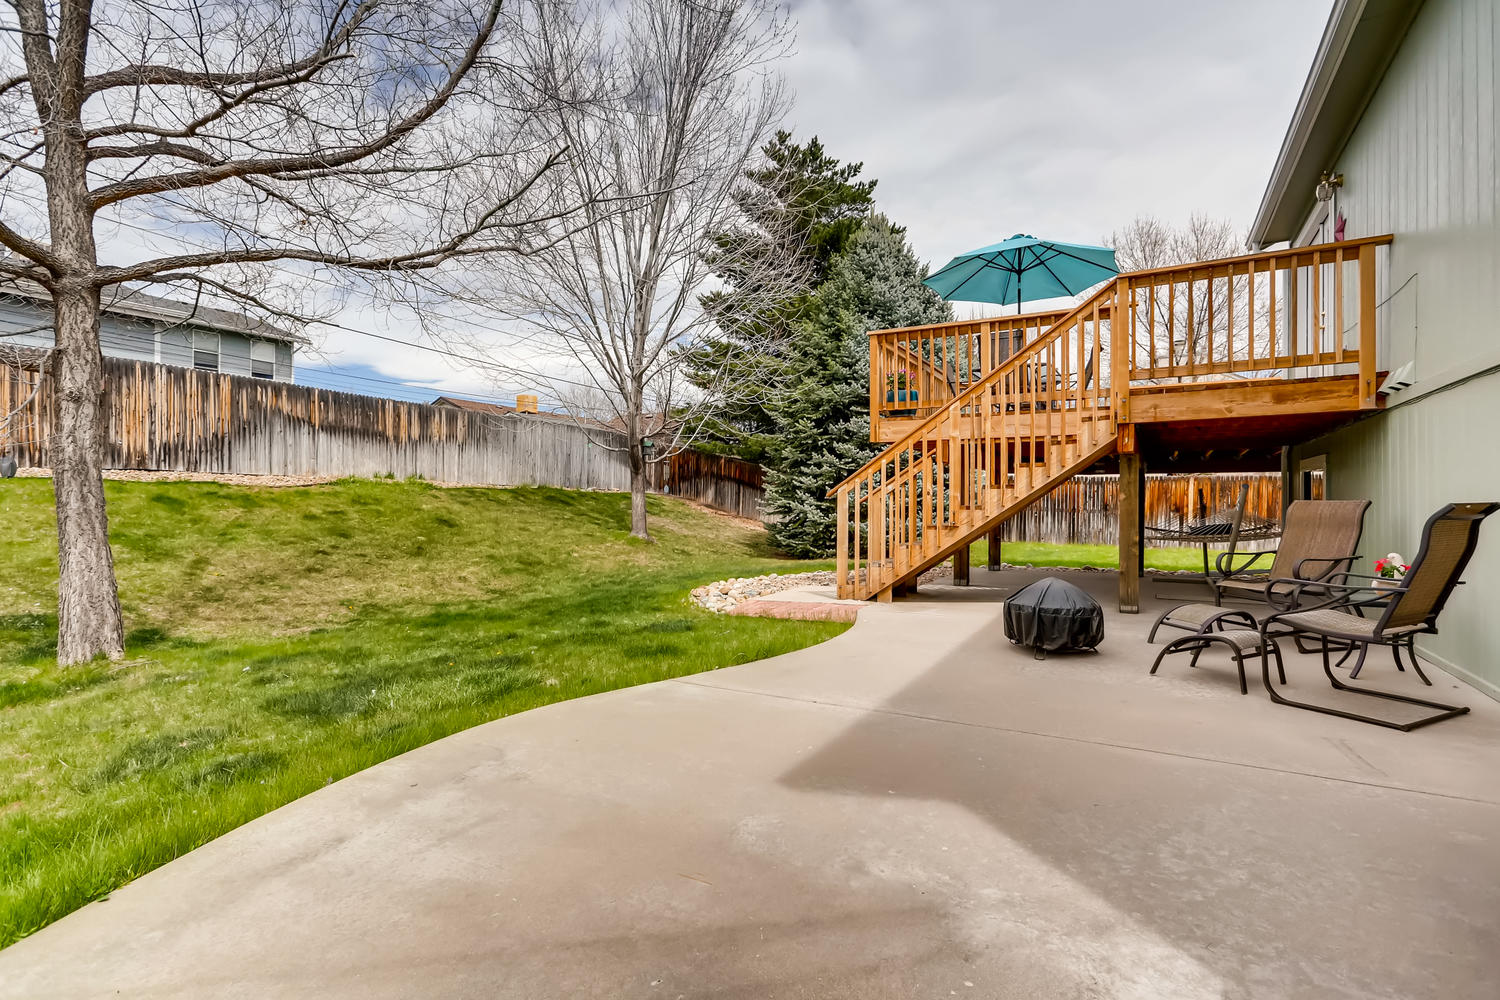 REAL ESTATE LISTING: 8725 S Yukon St Littleton CO Patio & Deck